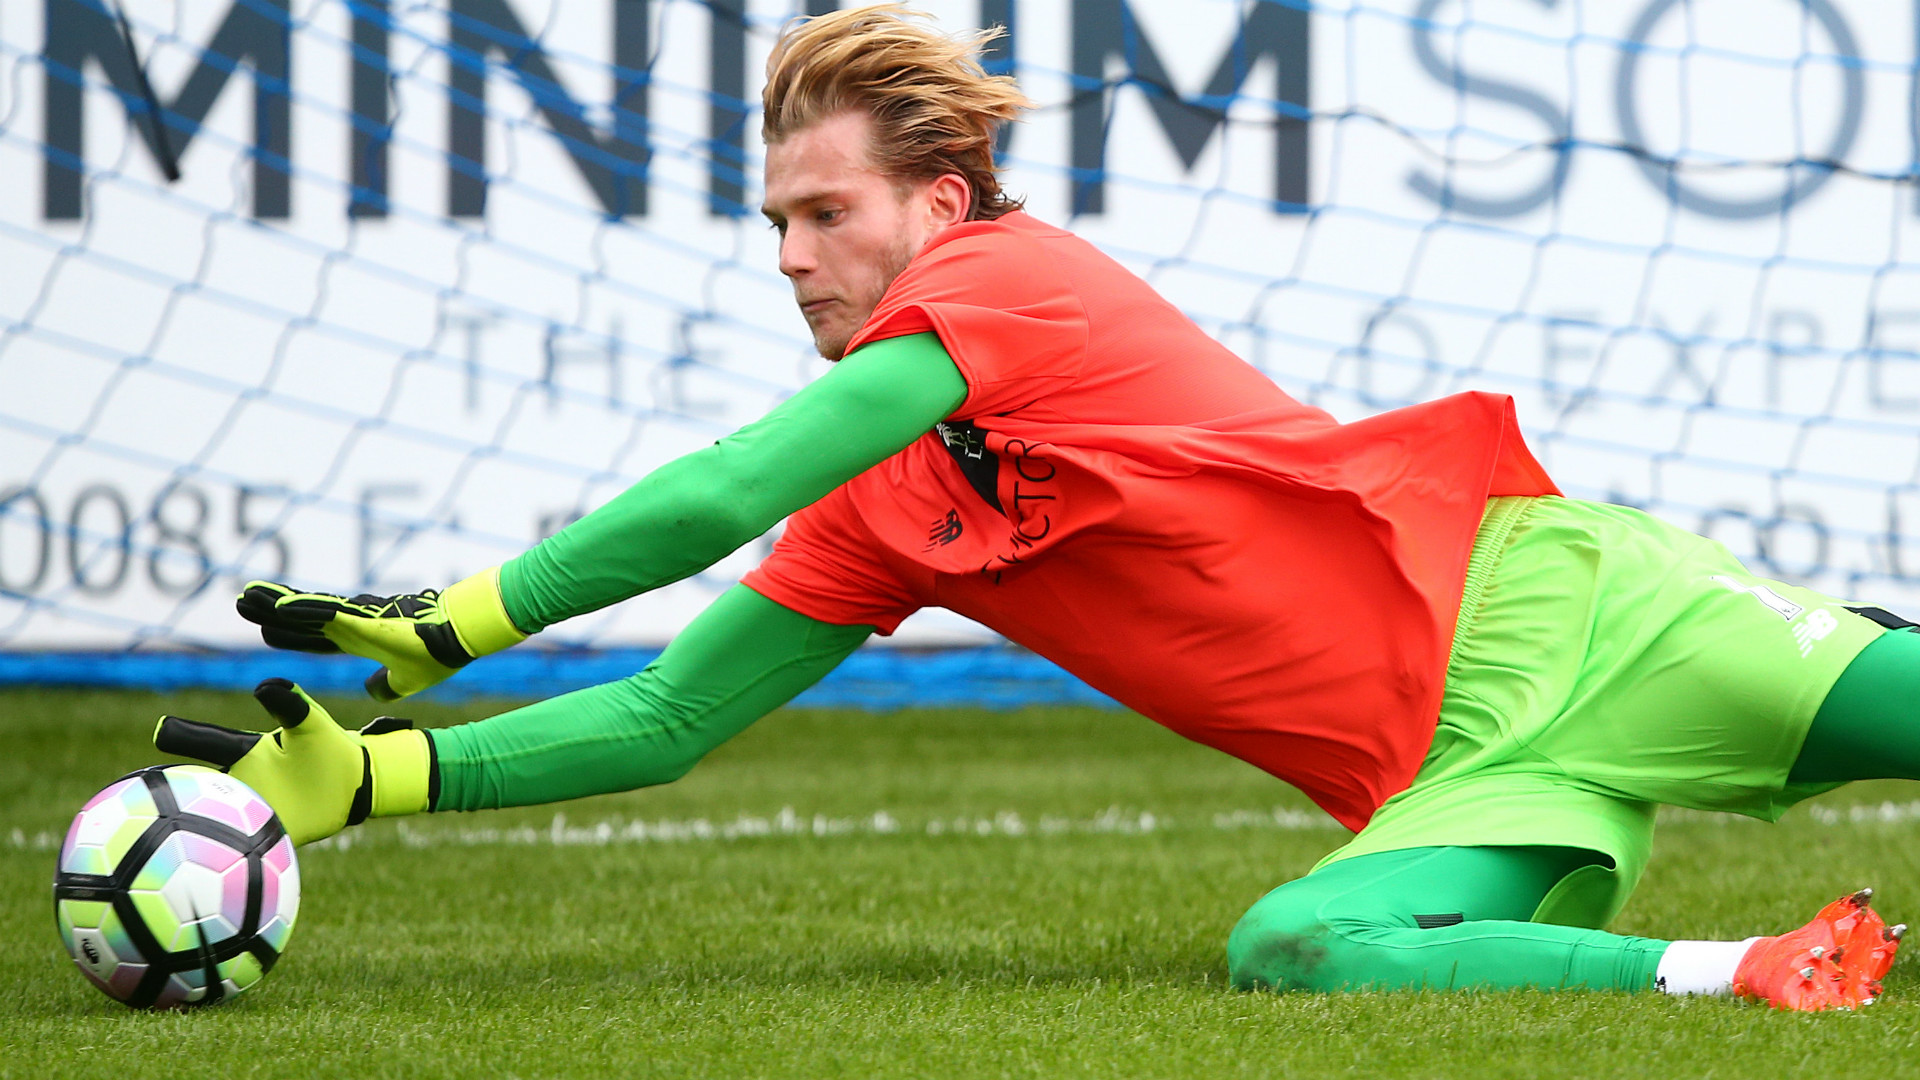 Liverpool News: Manninger Reveals What Klopp Expects From